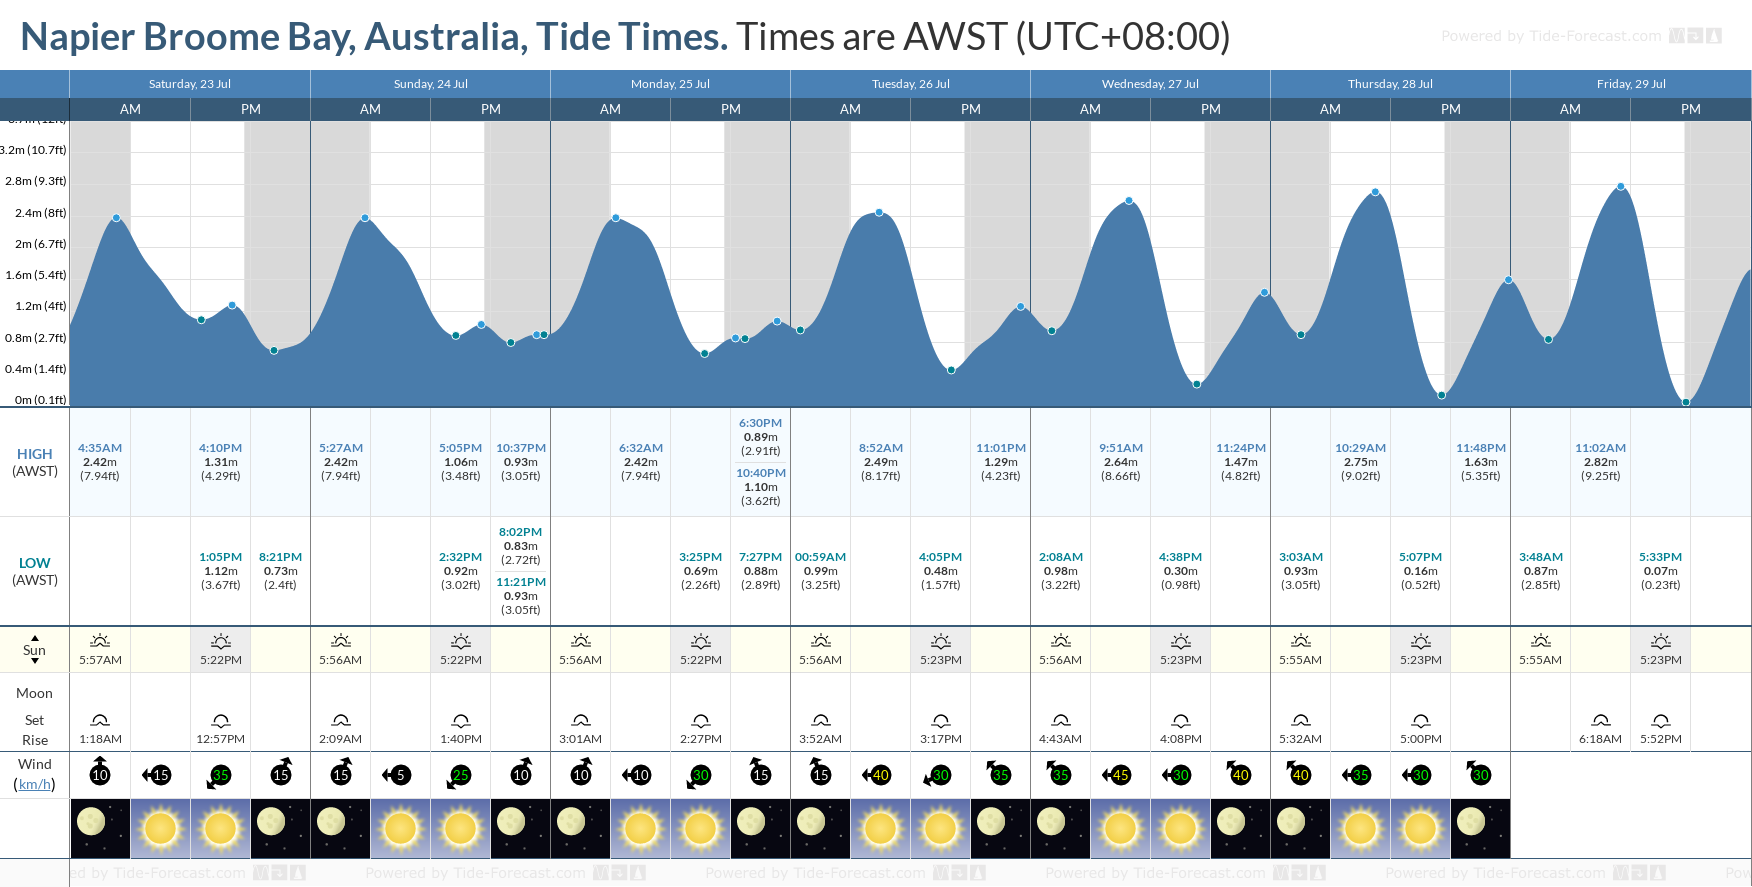 Napier Broome Bay, Australia Tide Chart including high and low tide tide times for the next 7 days